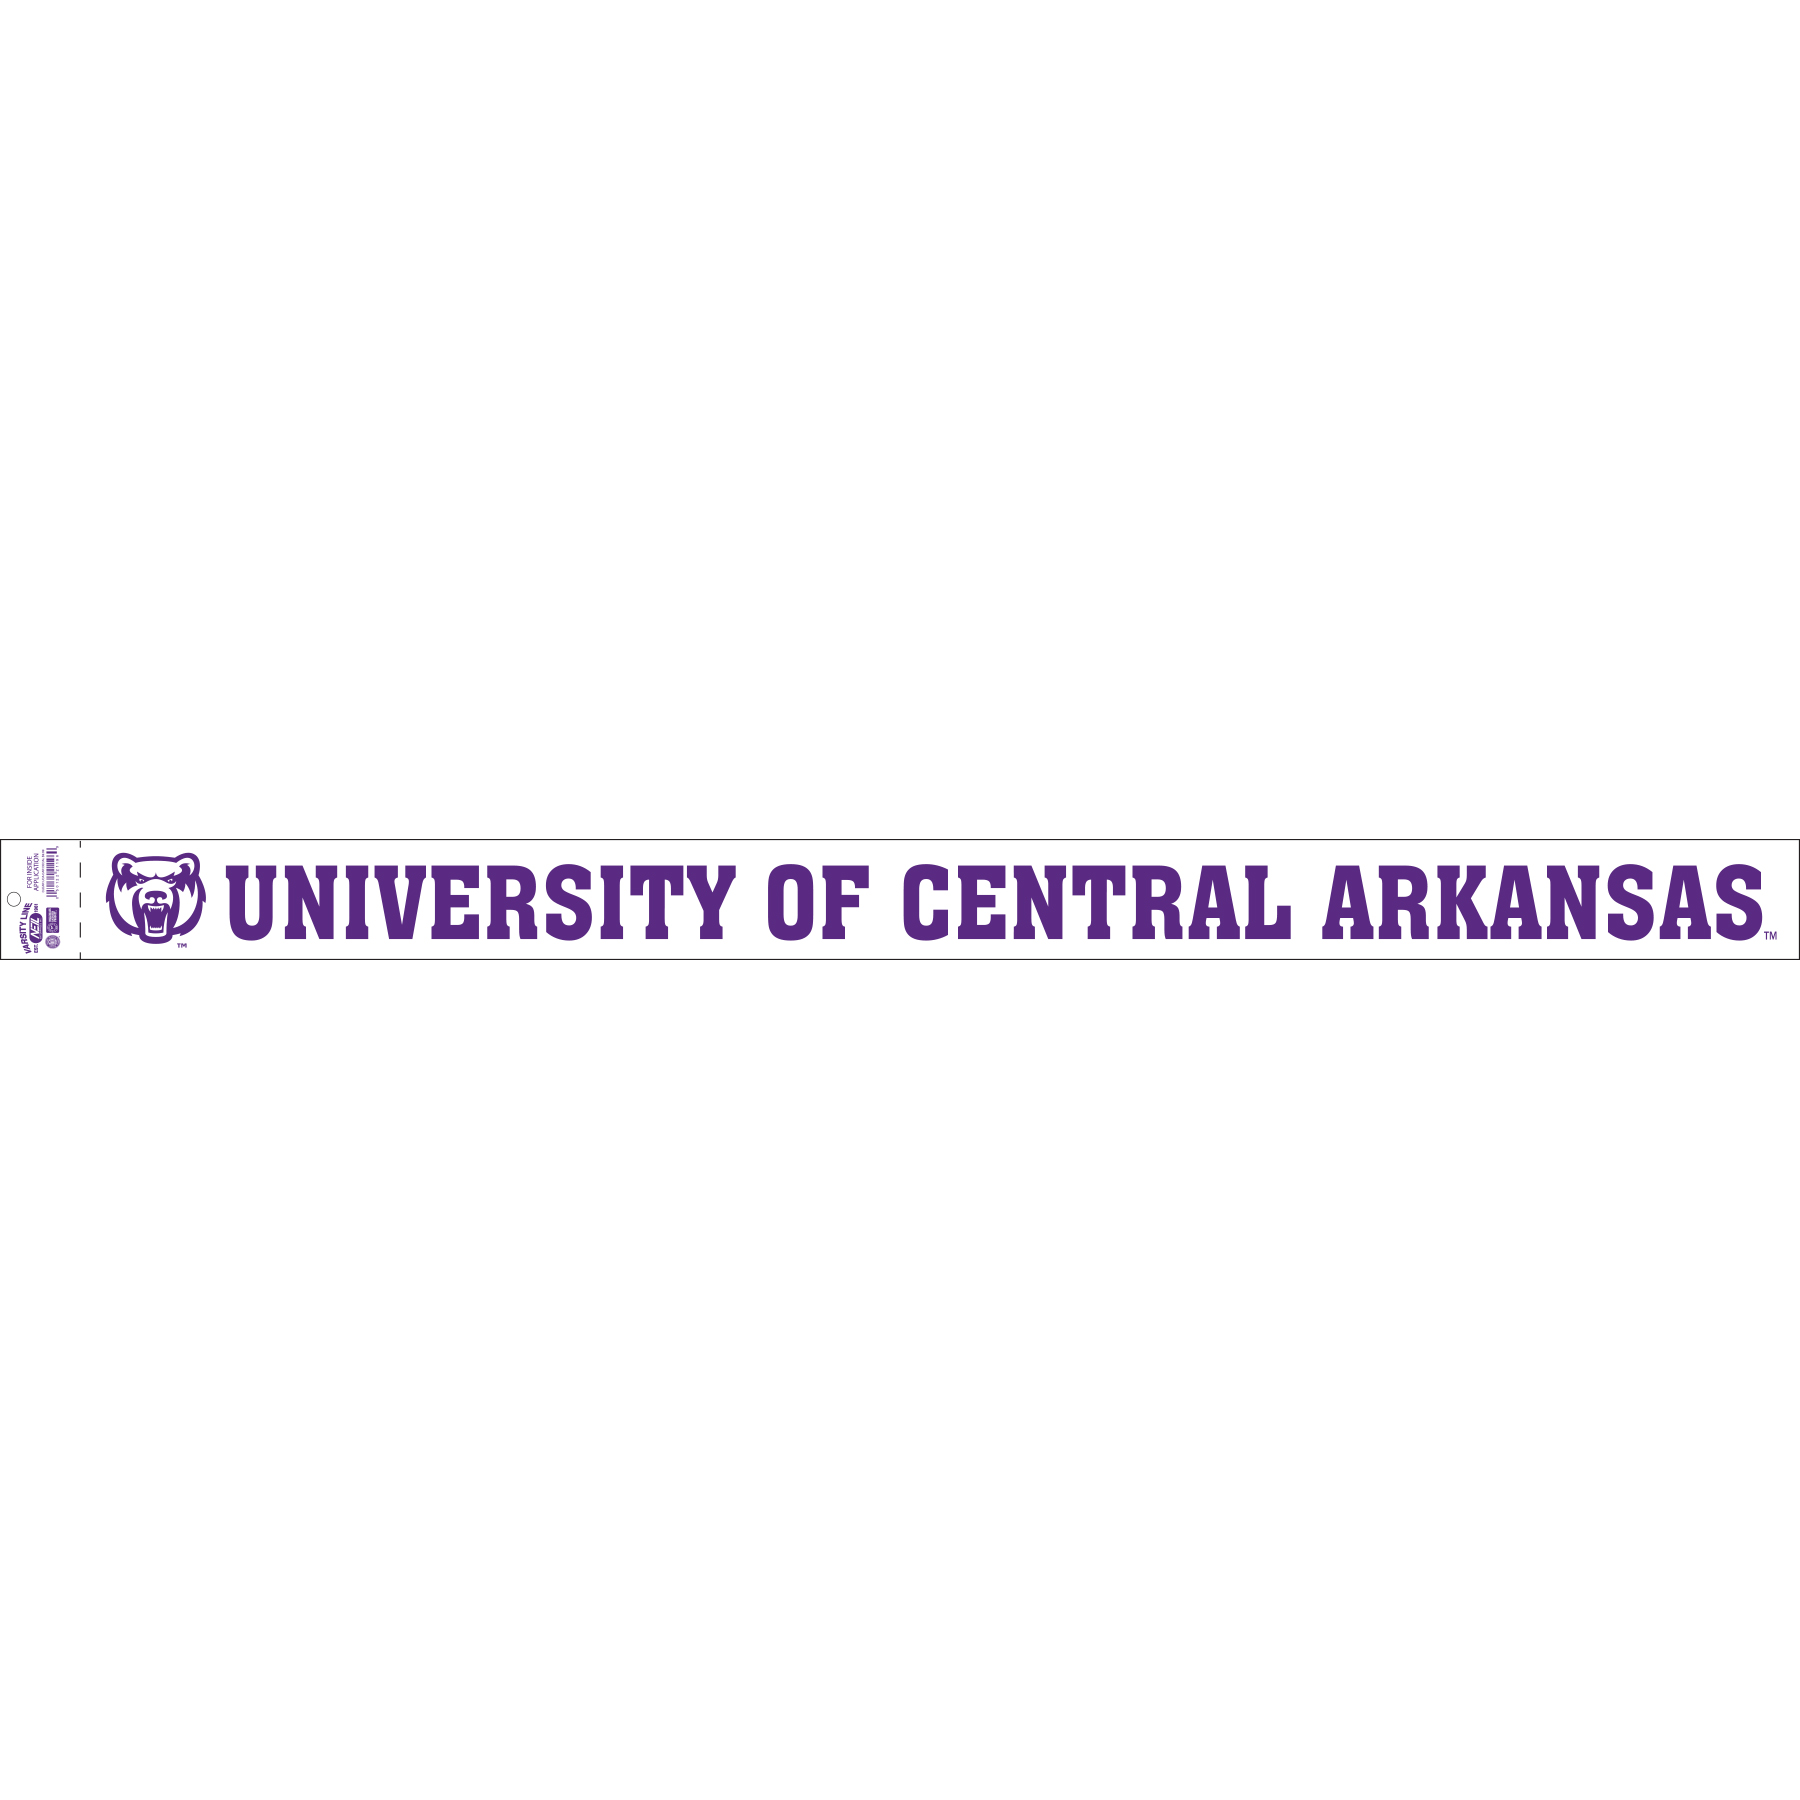 University of Central Arkansas Long Decal